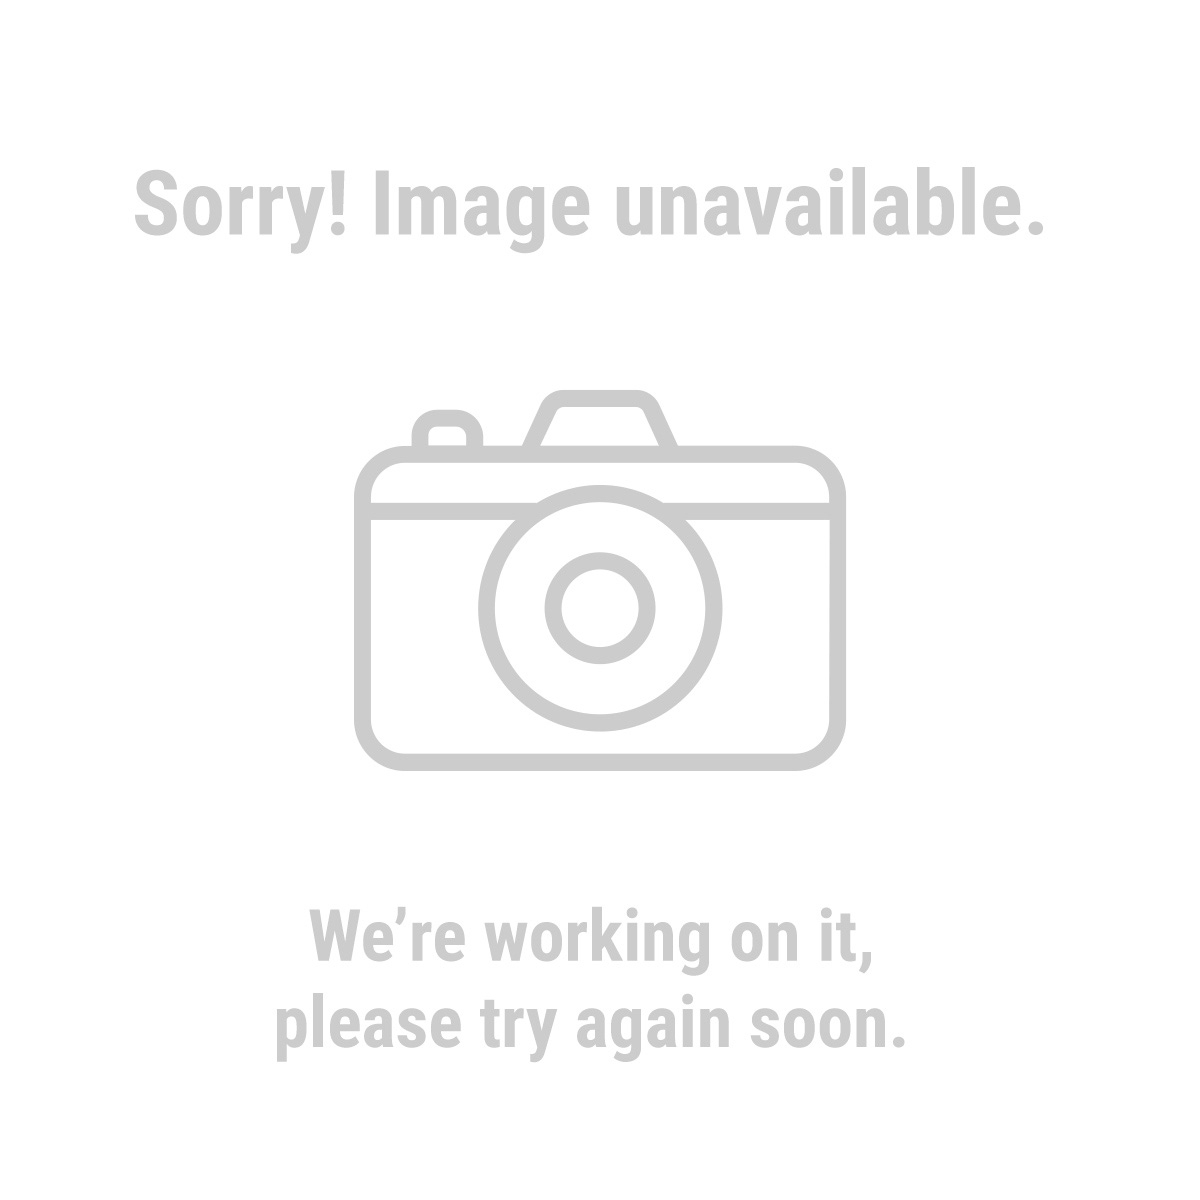 Pittsburgh 62832 40 Pc Carbon Steel Metric Tap and Die Set